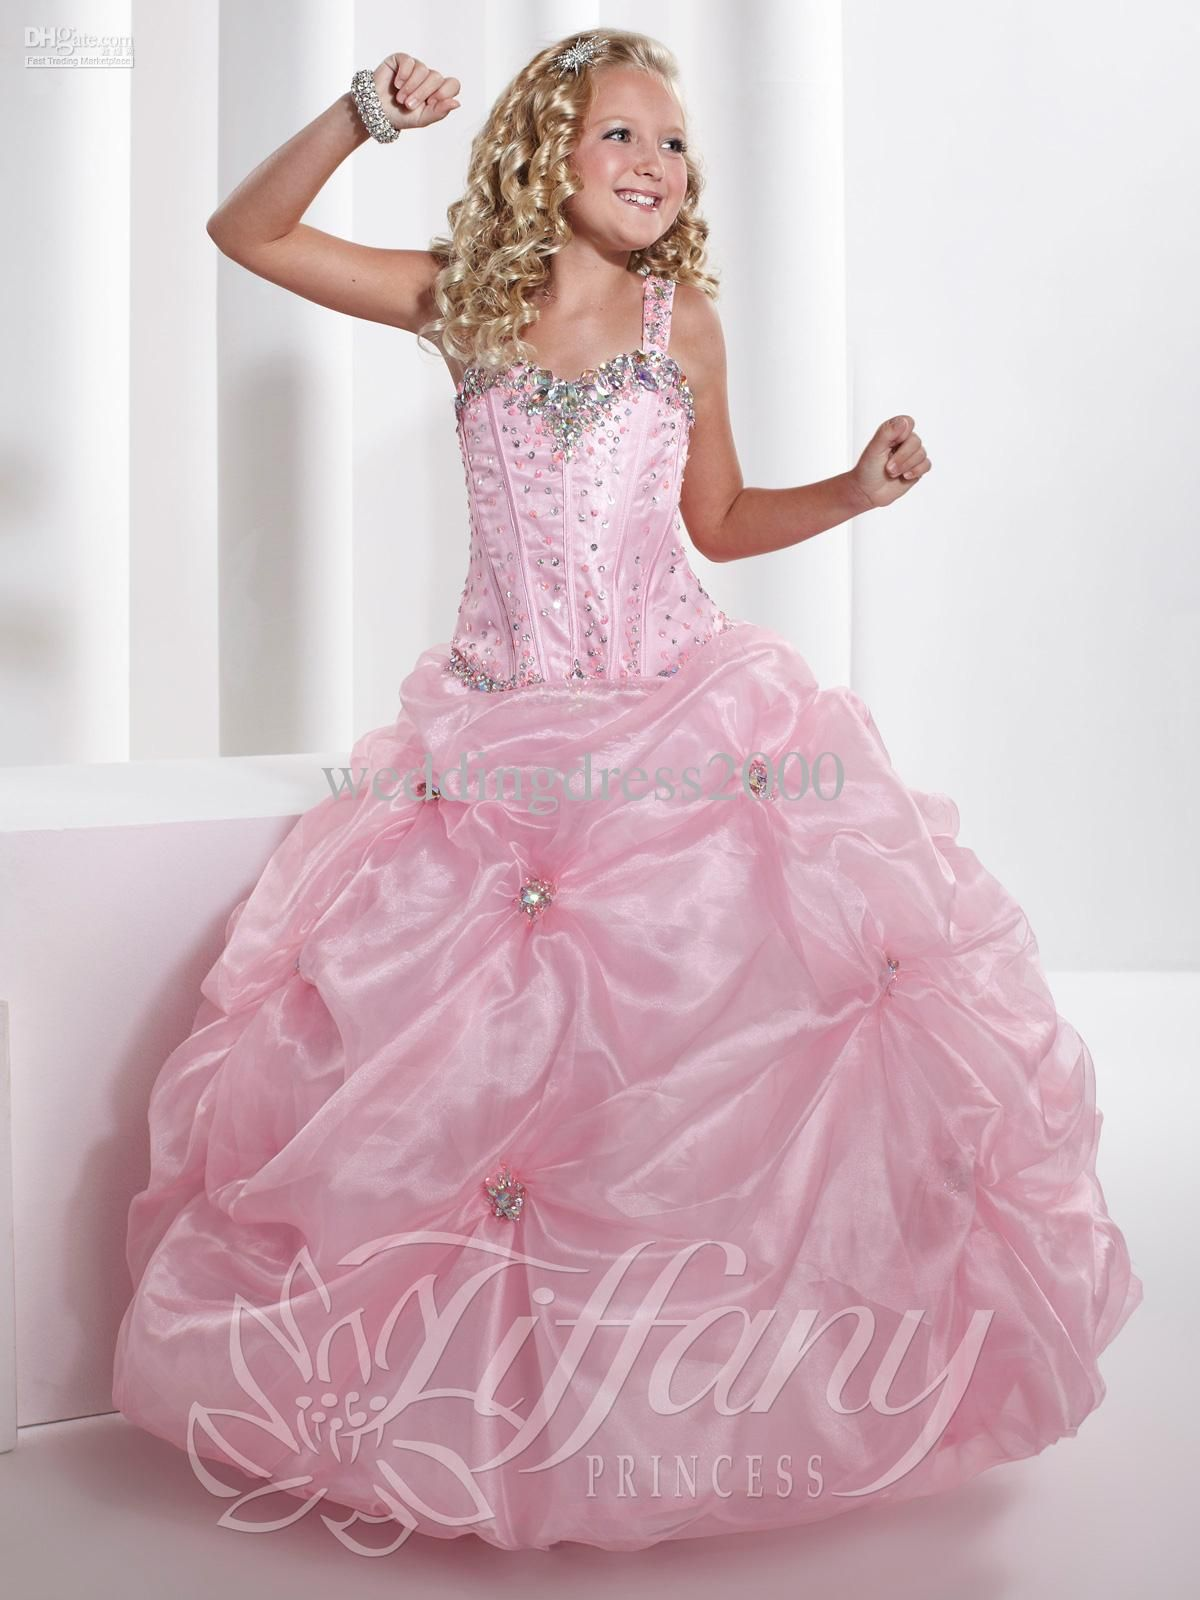 9bcb4be8ca0 seoProductName | Things I love | Beauty pageant dresses, Pretty ...